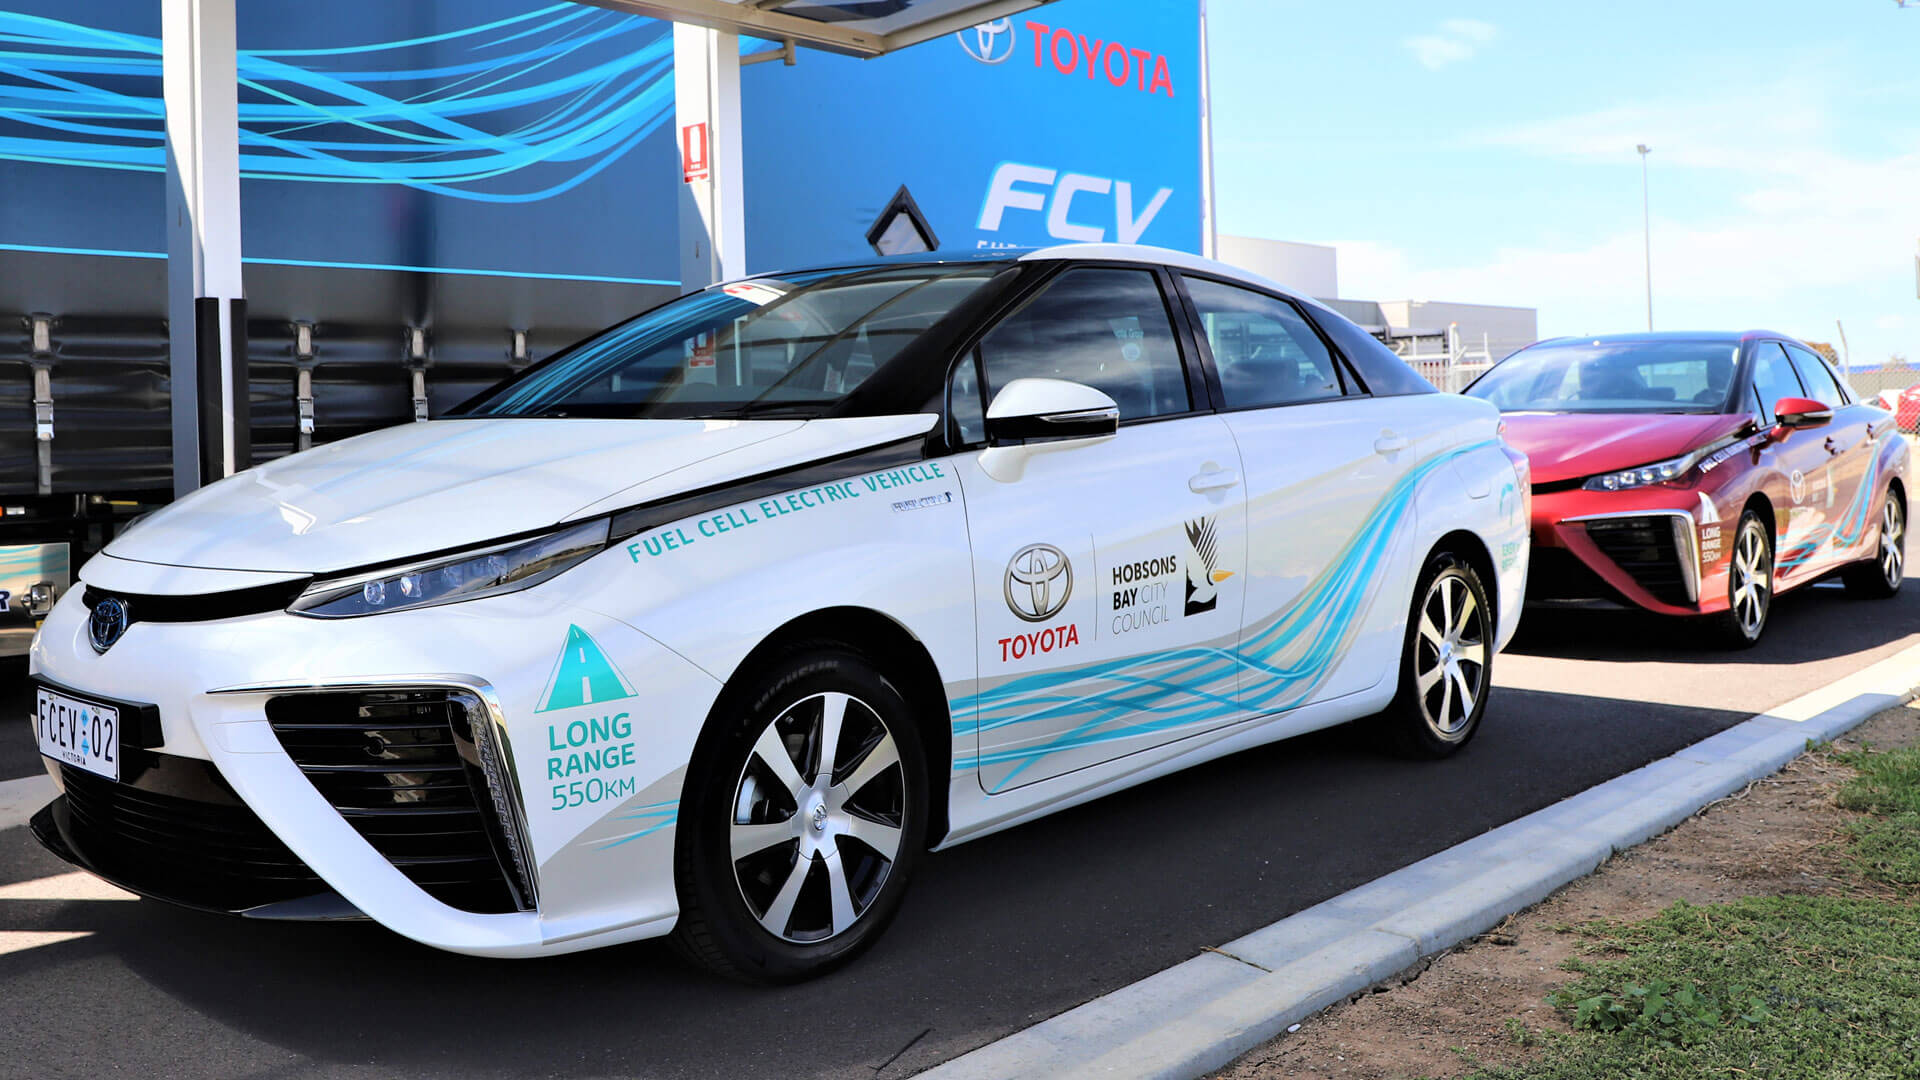 Hydrogen Cars: Toyota Launches Hydrogen-electric Vehicle Trial In